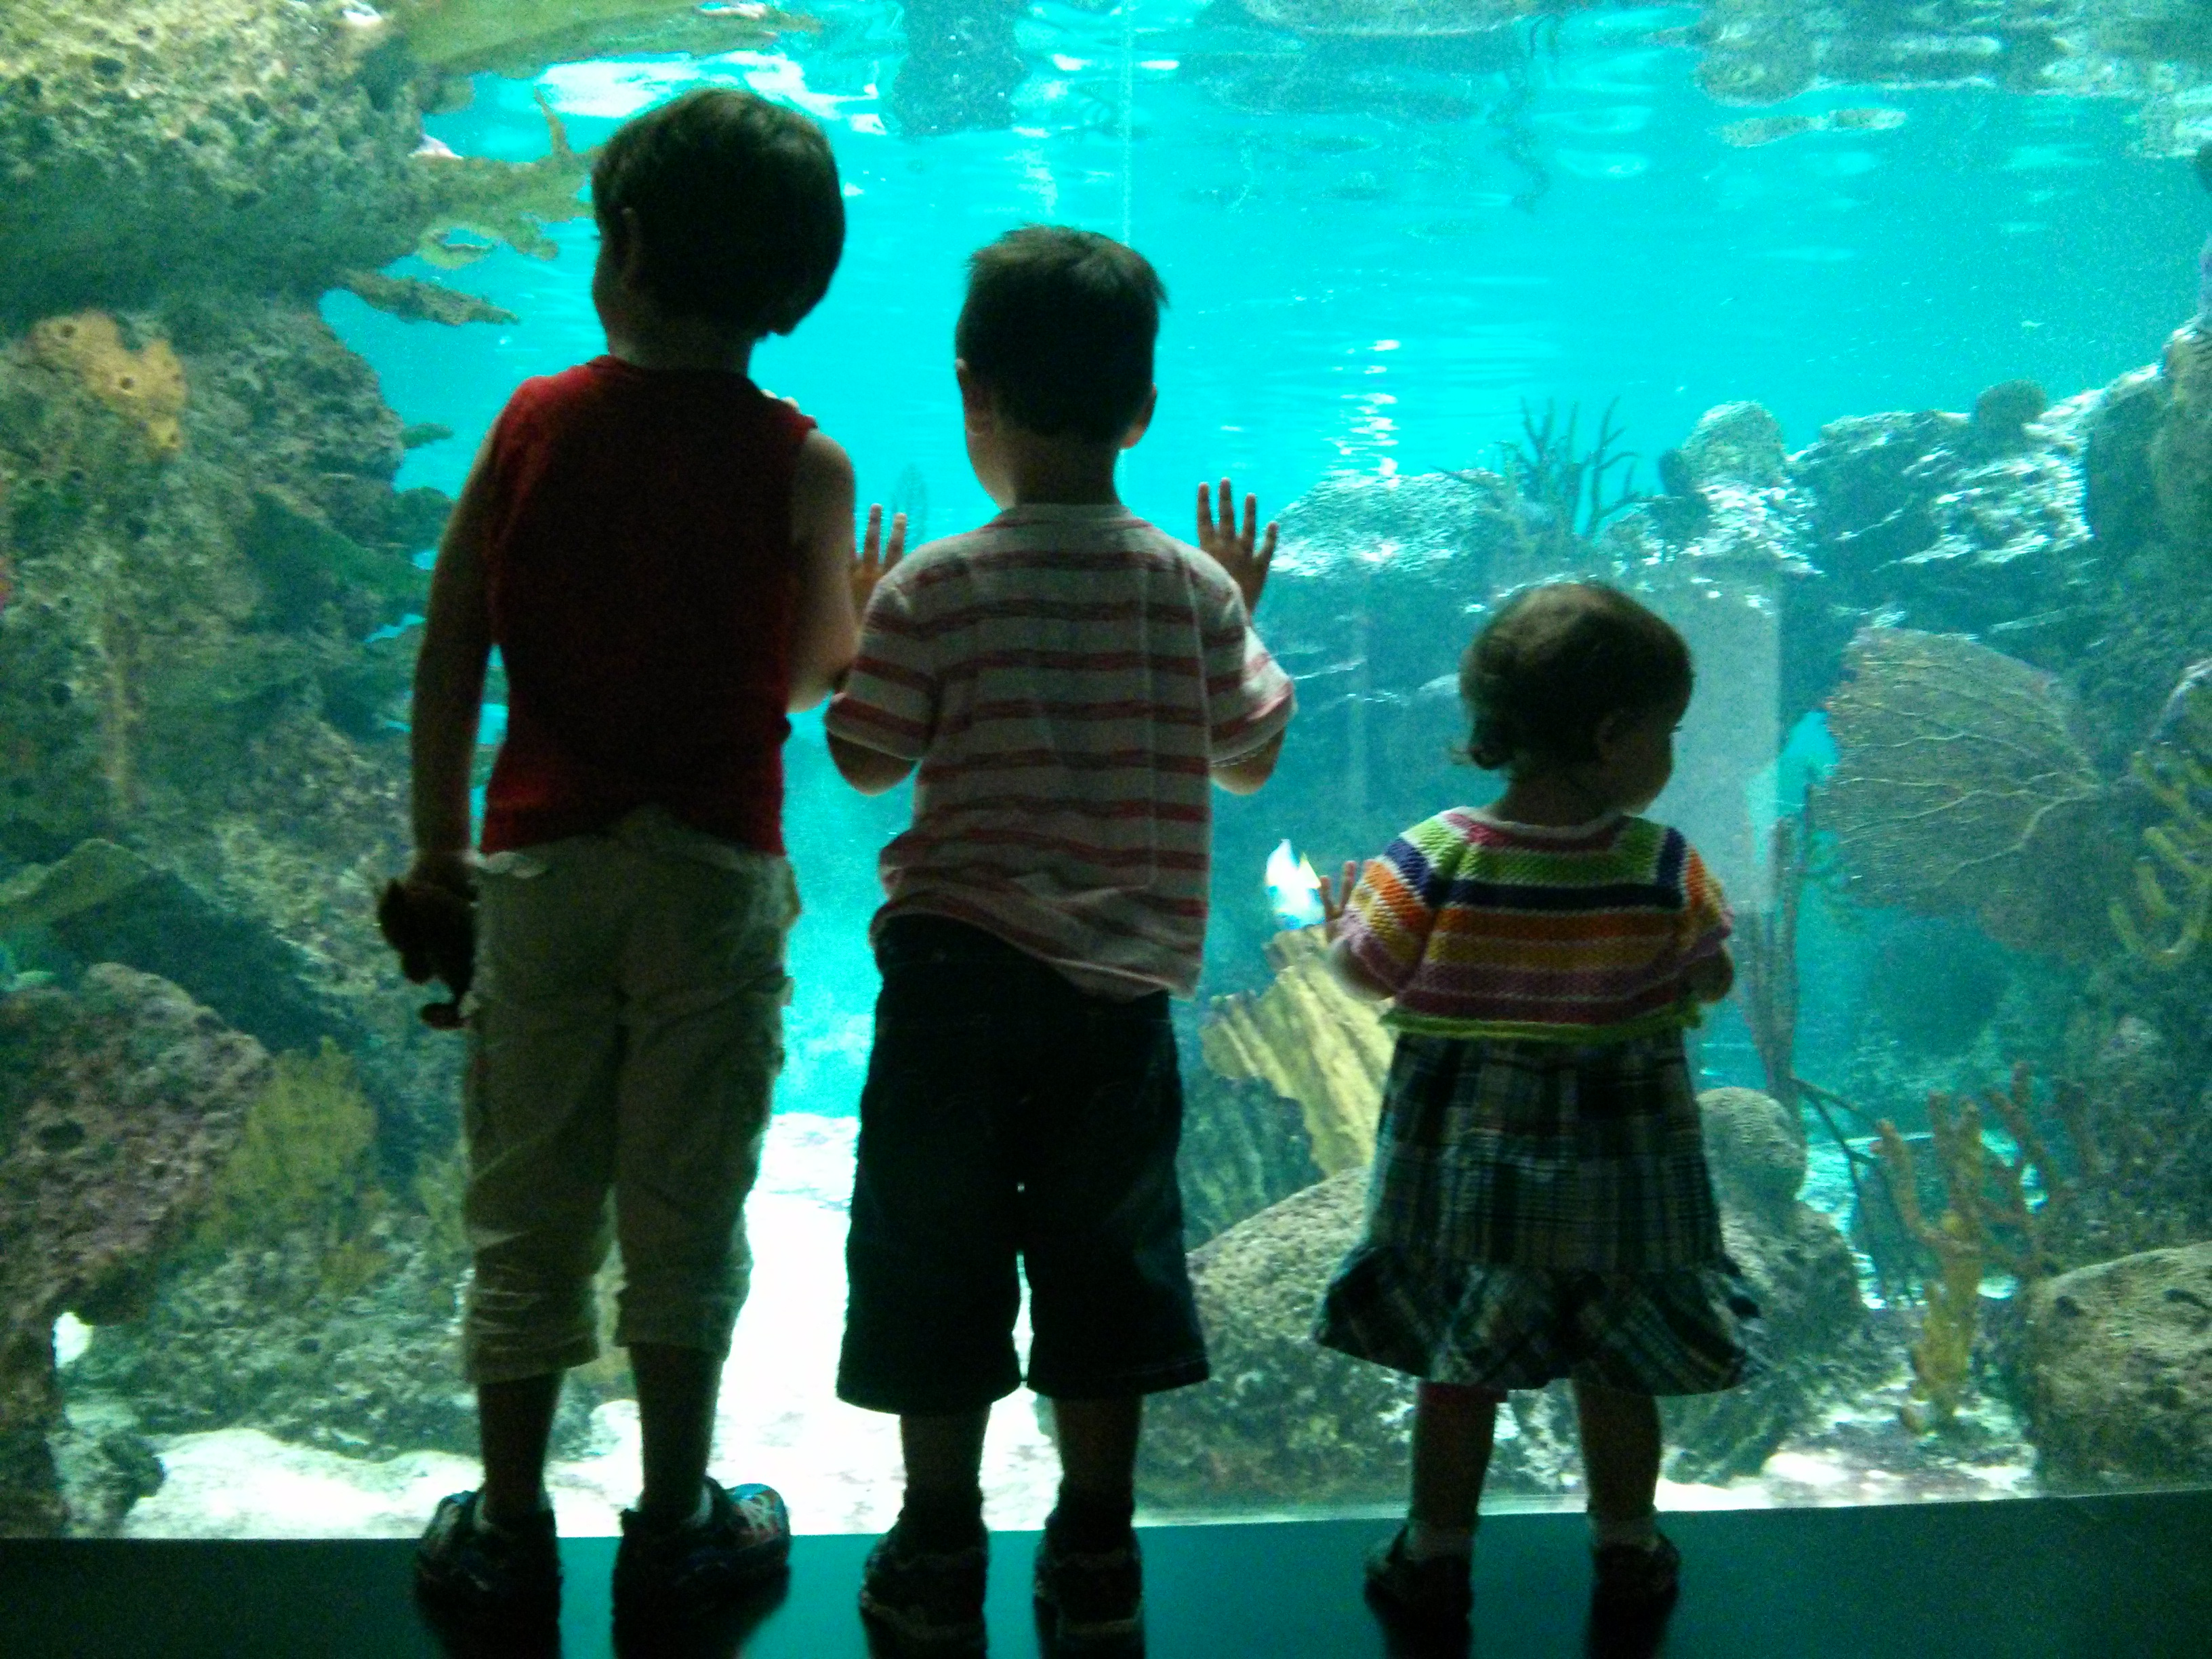 A Visit to the newly reopened NY Aquarium #ConeyComeback